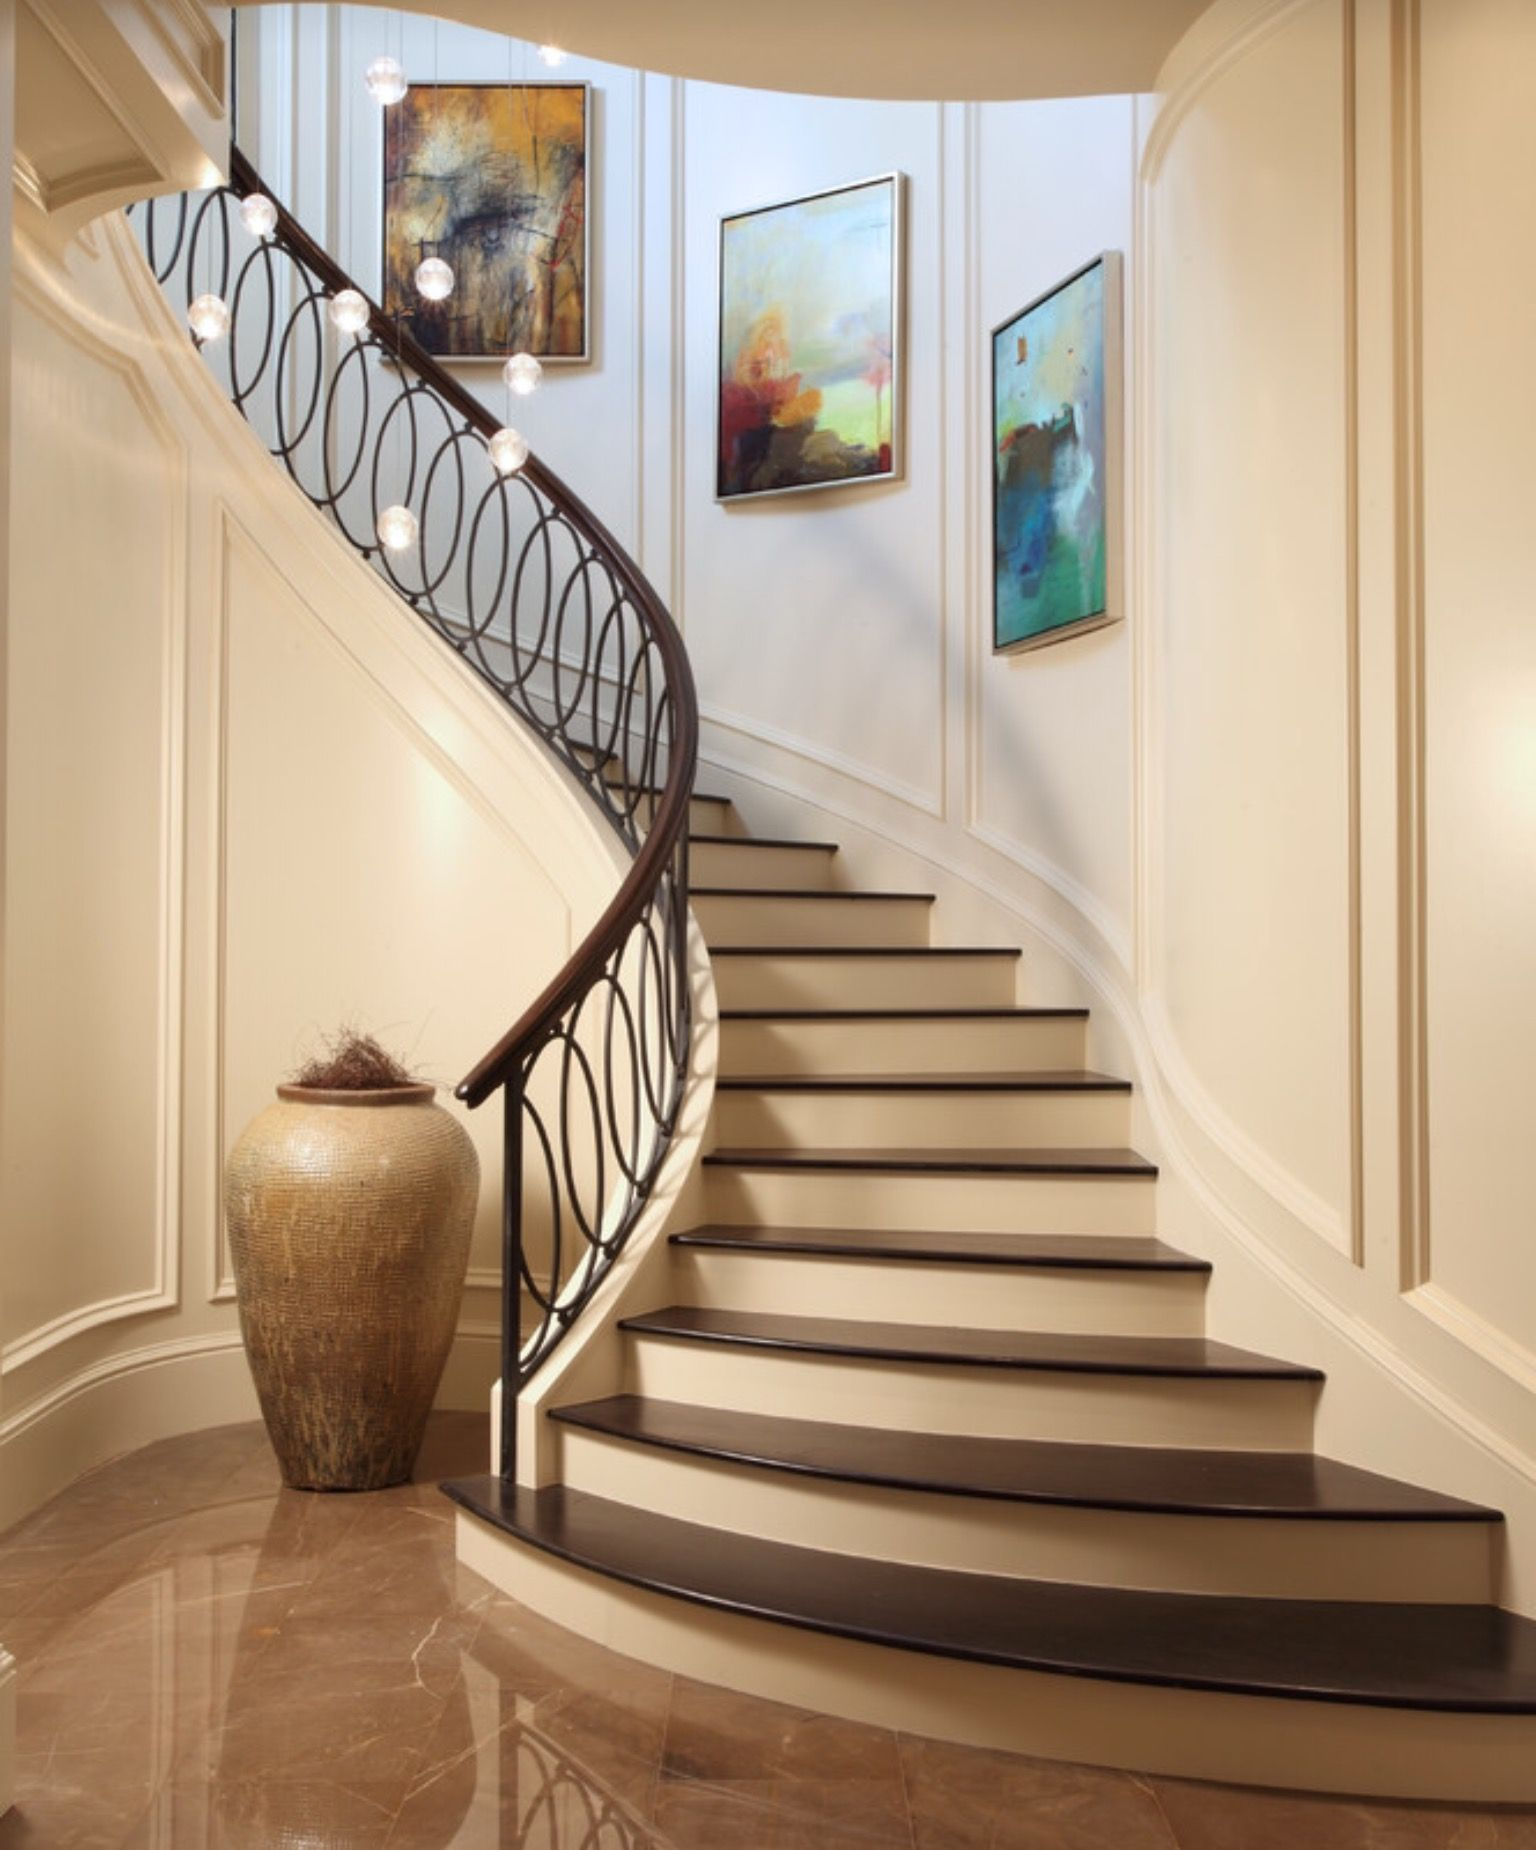 Best Idea By Mir Cev On Stepeniste Wrought Iron Stair Railing 400 x 300